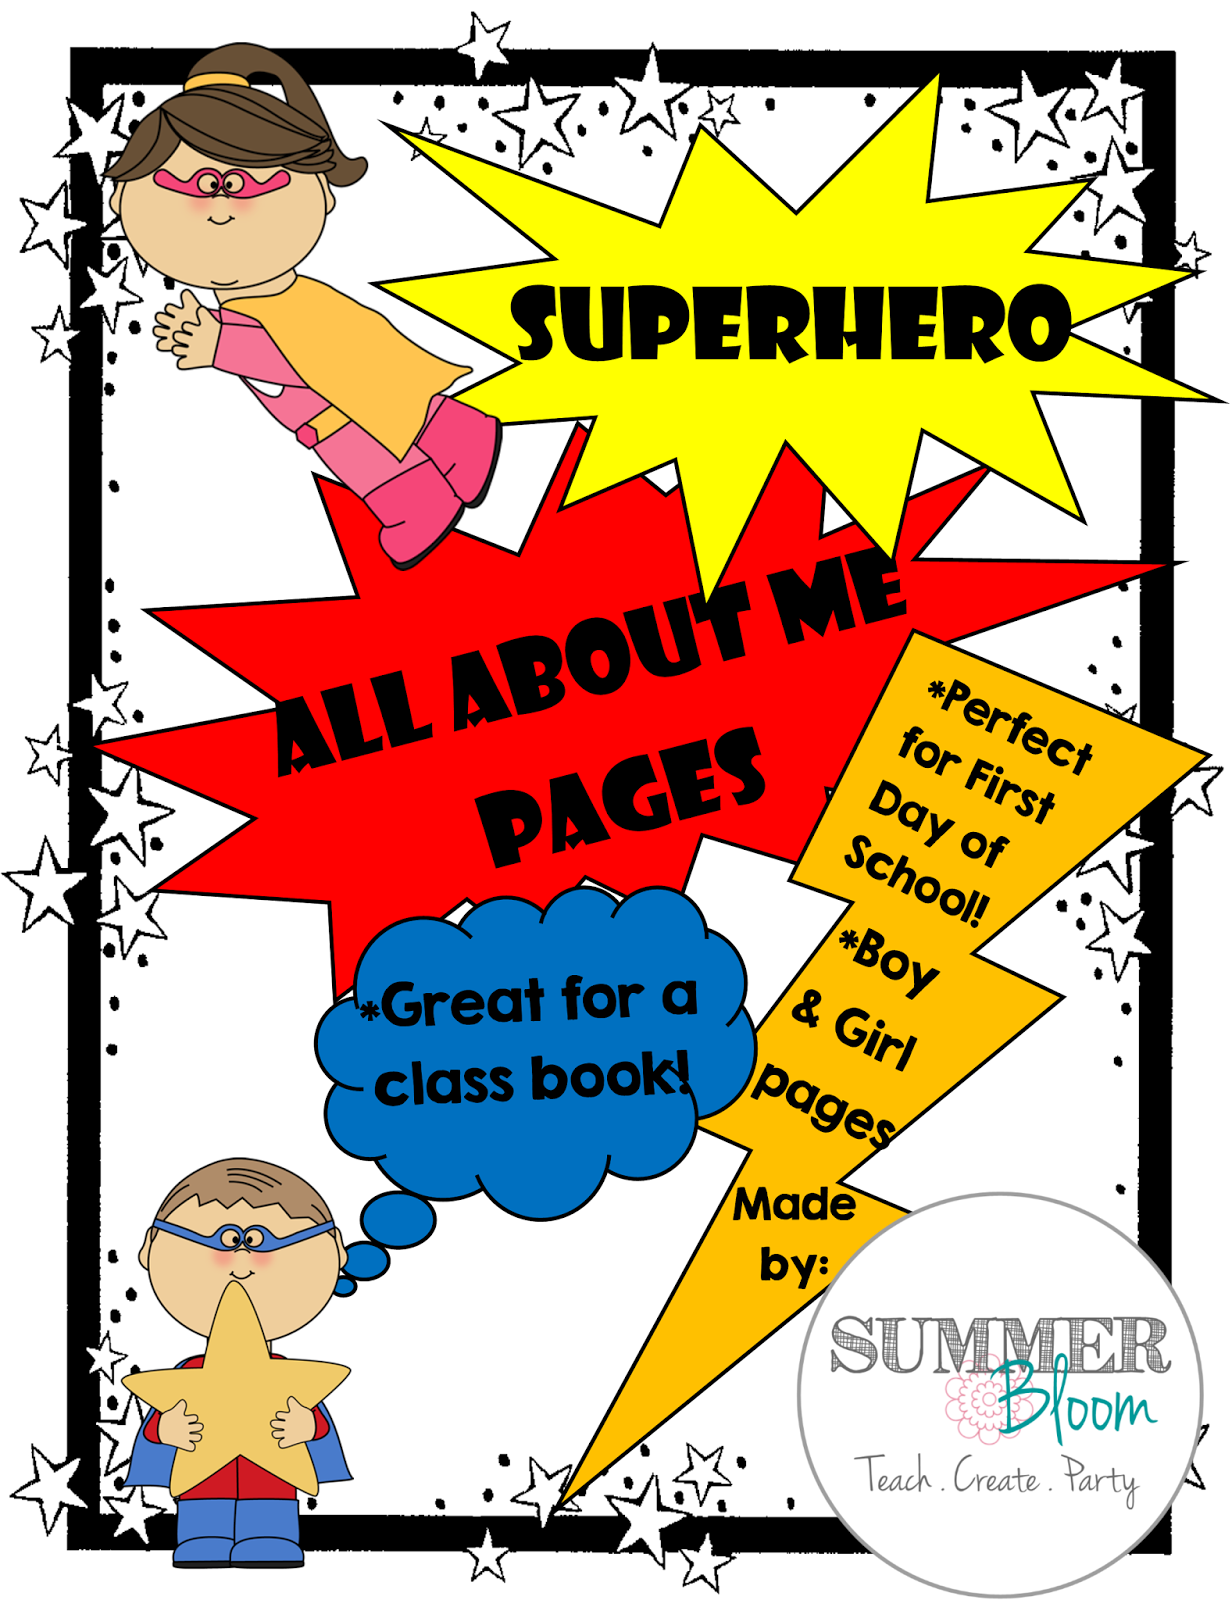 Summer Bloom Teach Create Party Superhero Themed All